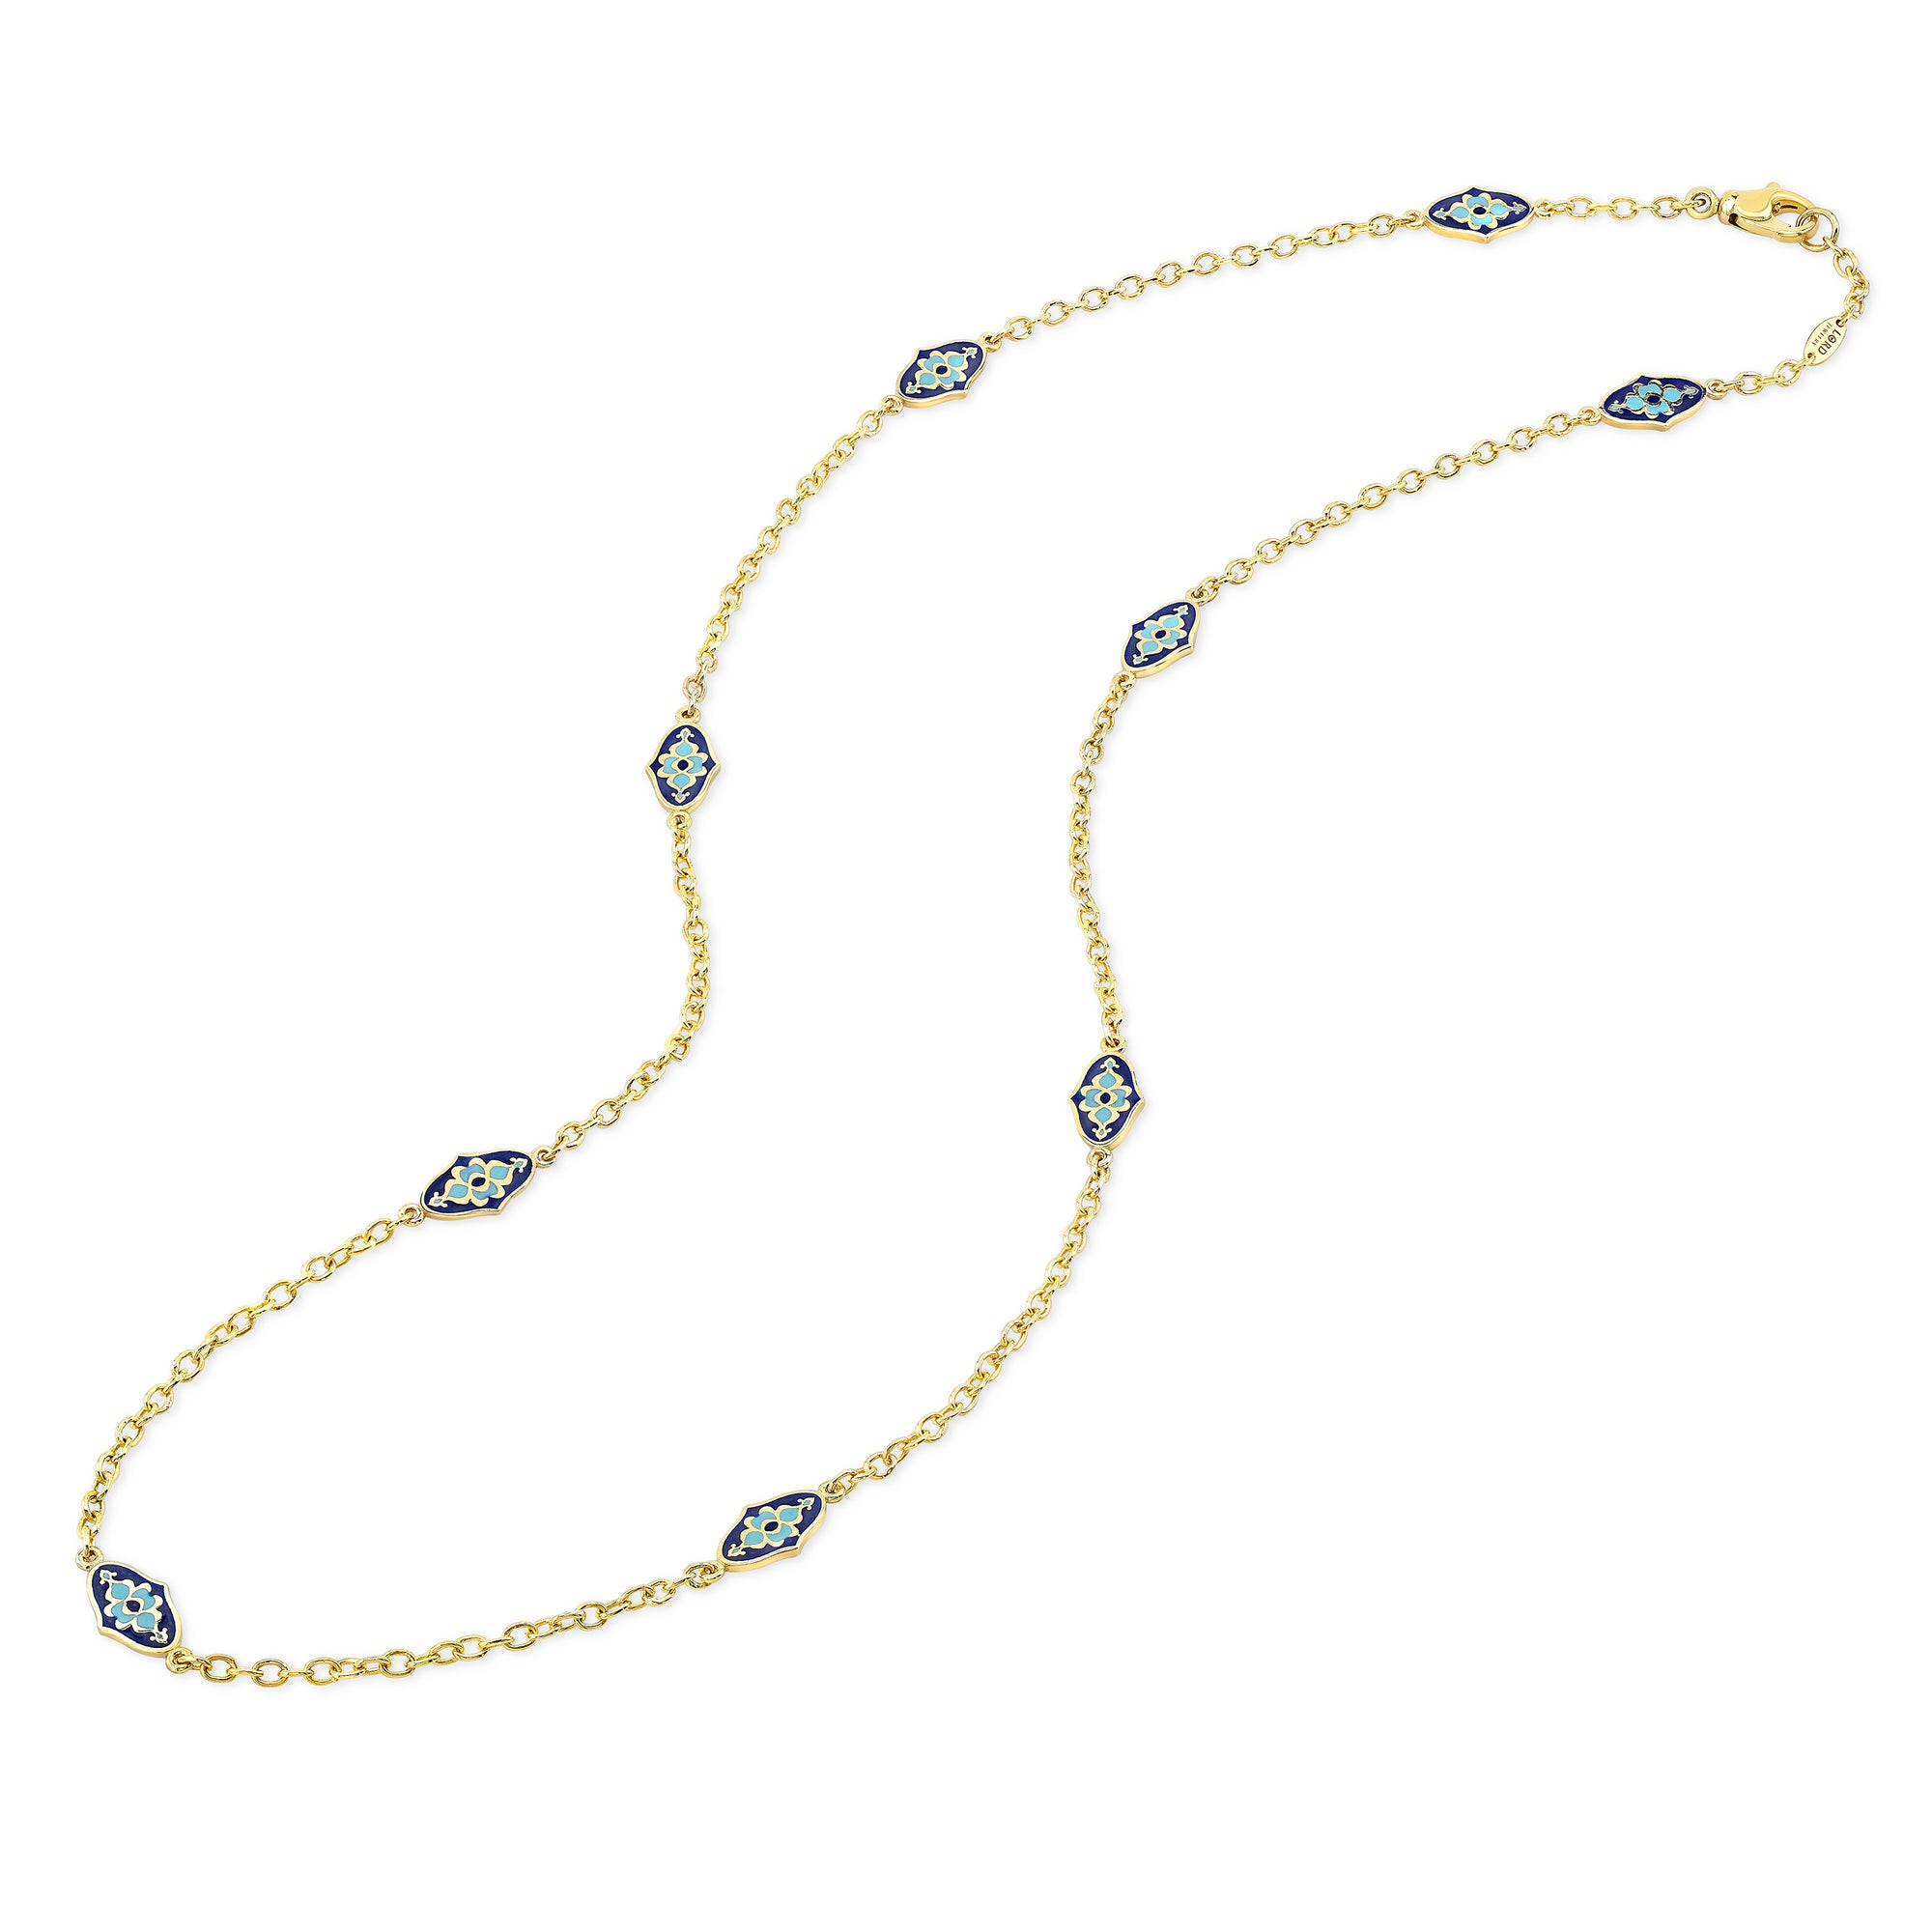 18k Yellow Gold Mosaic Enamel Station Necklace by Lord Jewelry - Talisman Collection Fine Jewelers